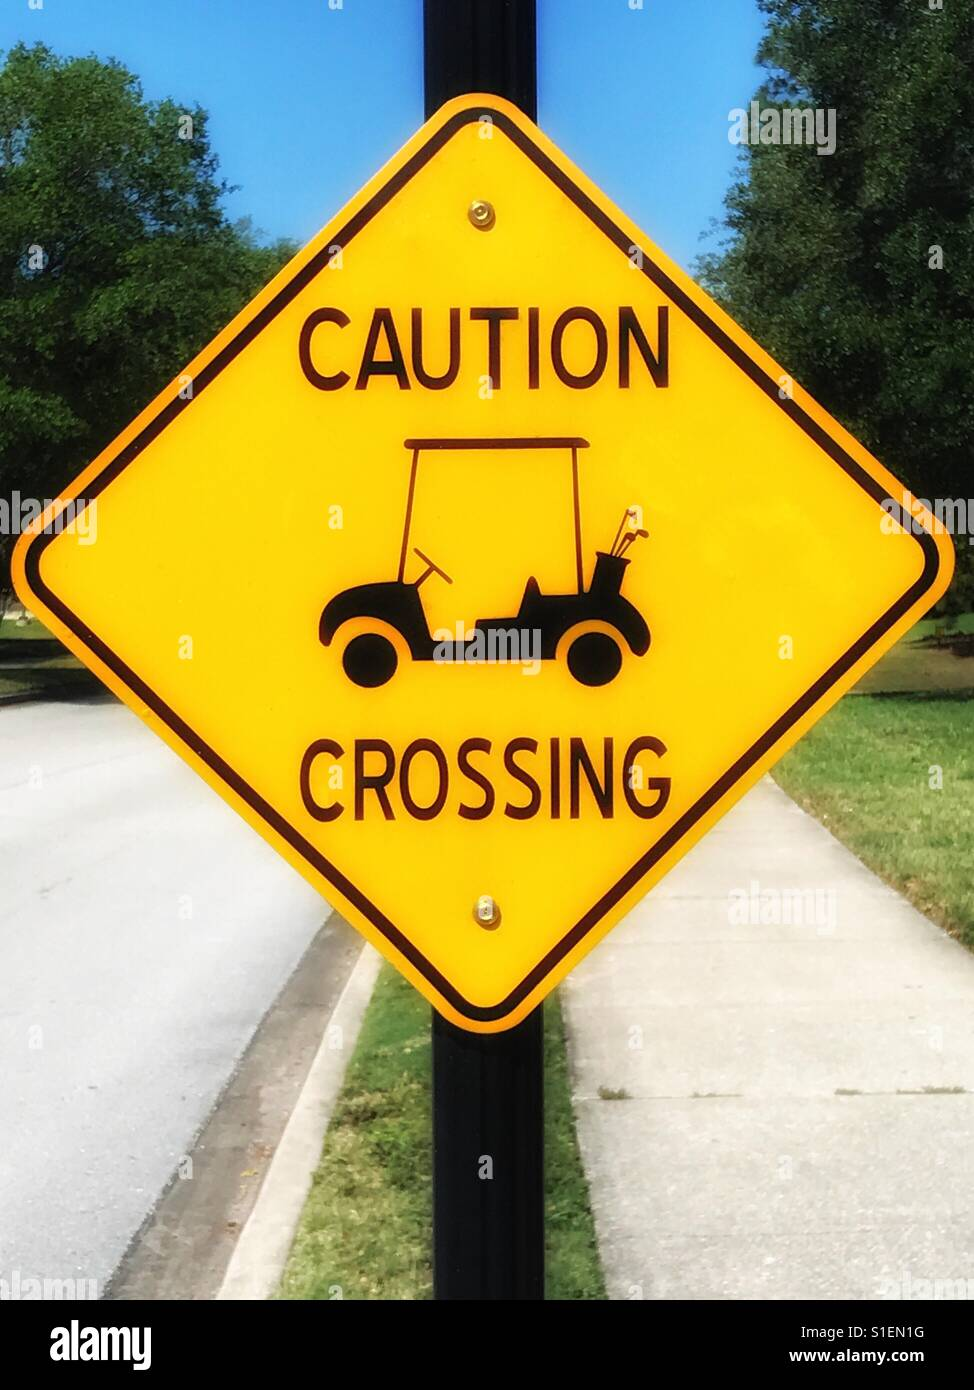 Caution Golf Cart Crossing sign - Stock Image